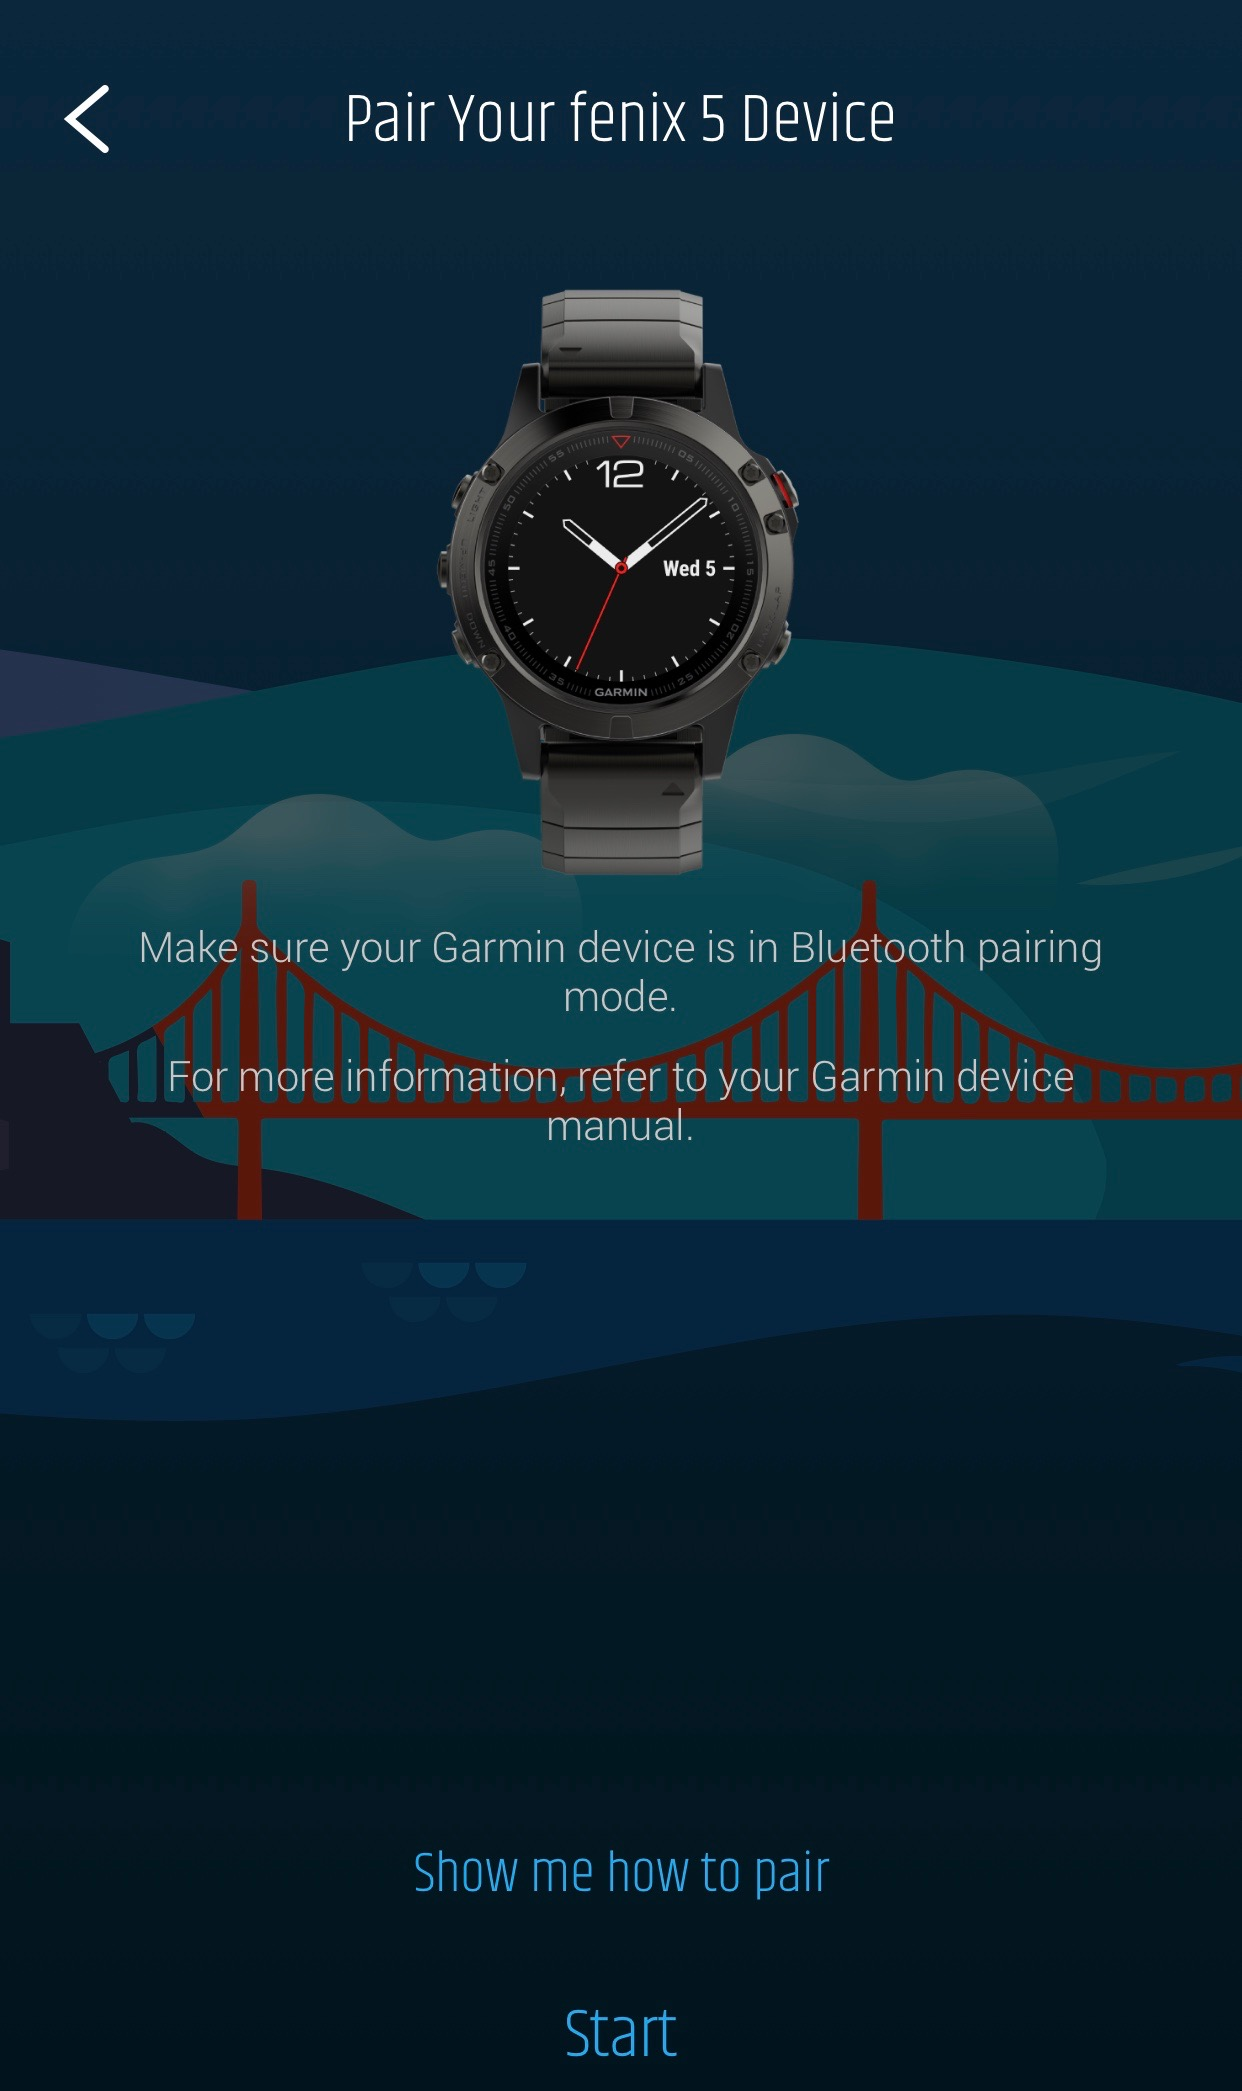 Garmin's new Fenix 5 smartwatch aims be the leader in fitness